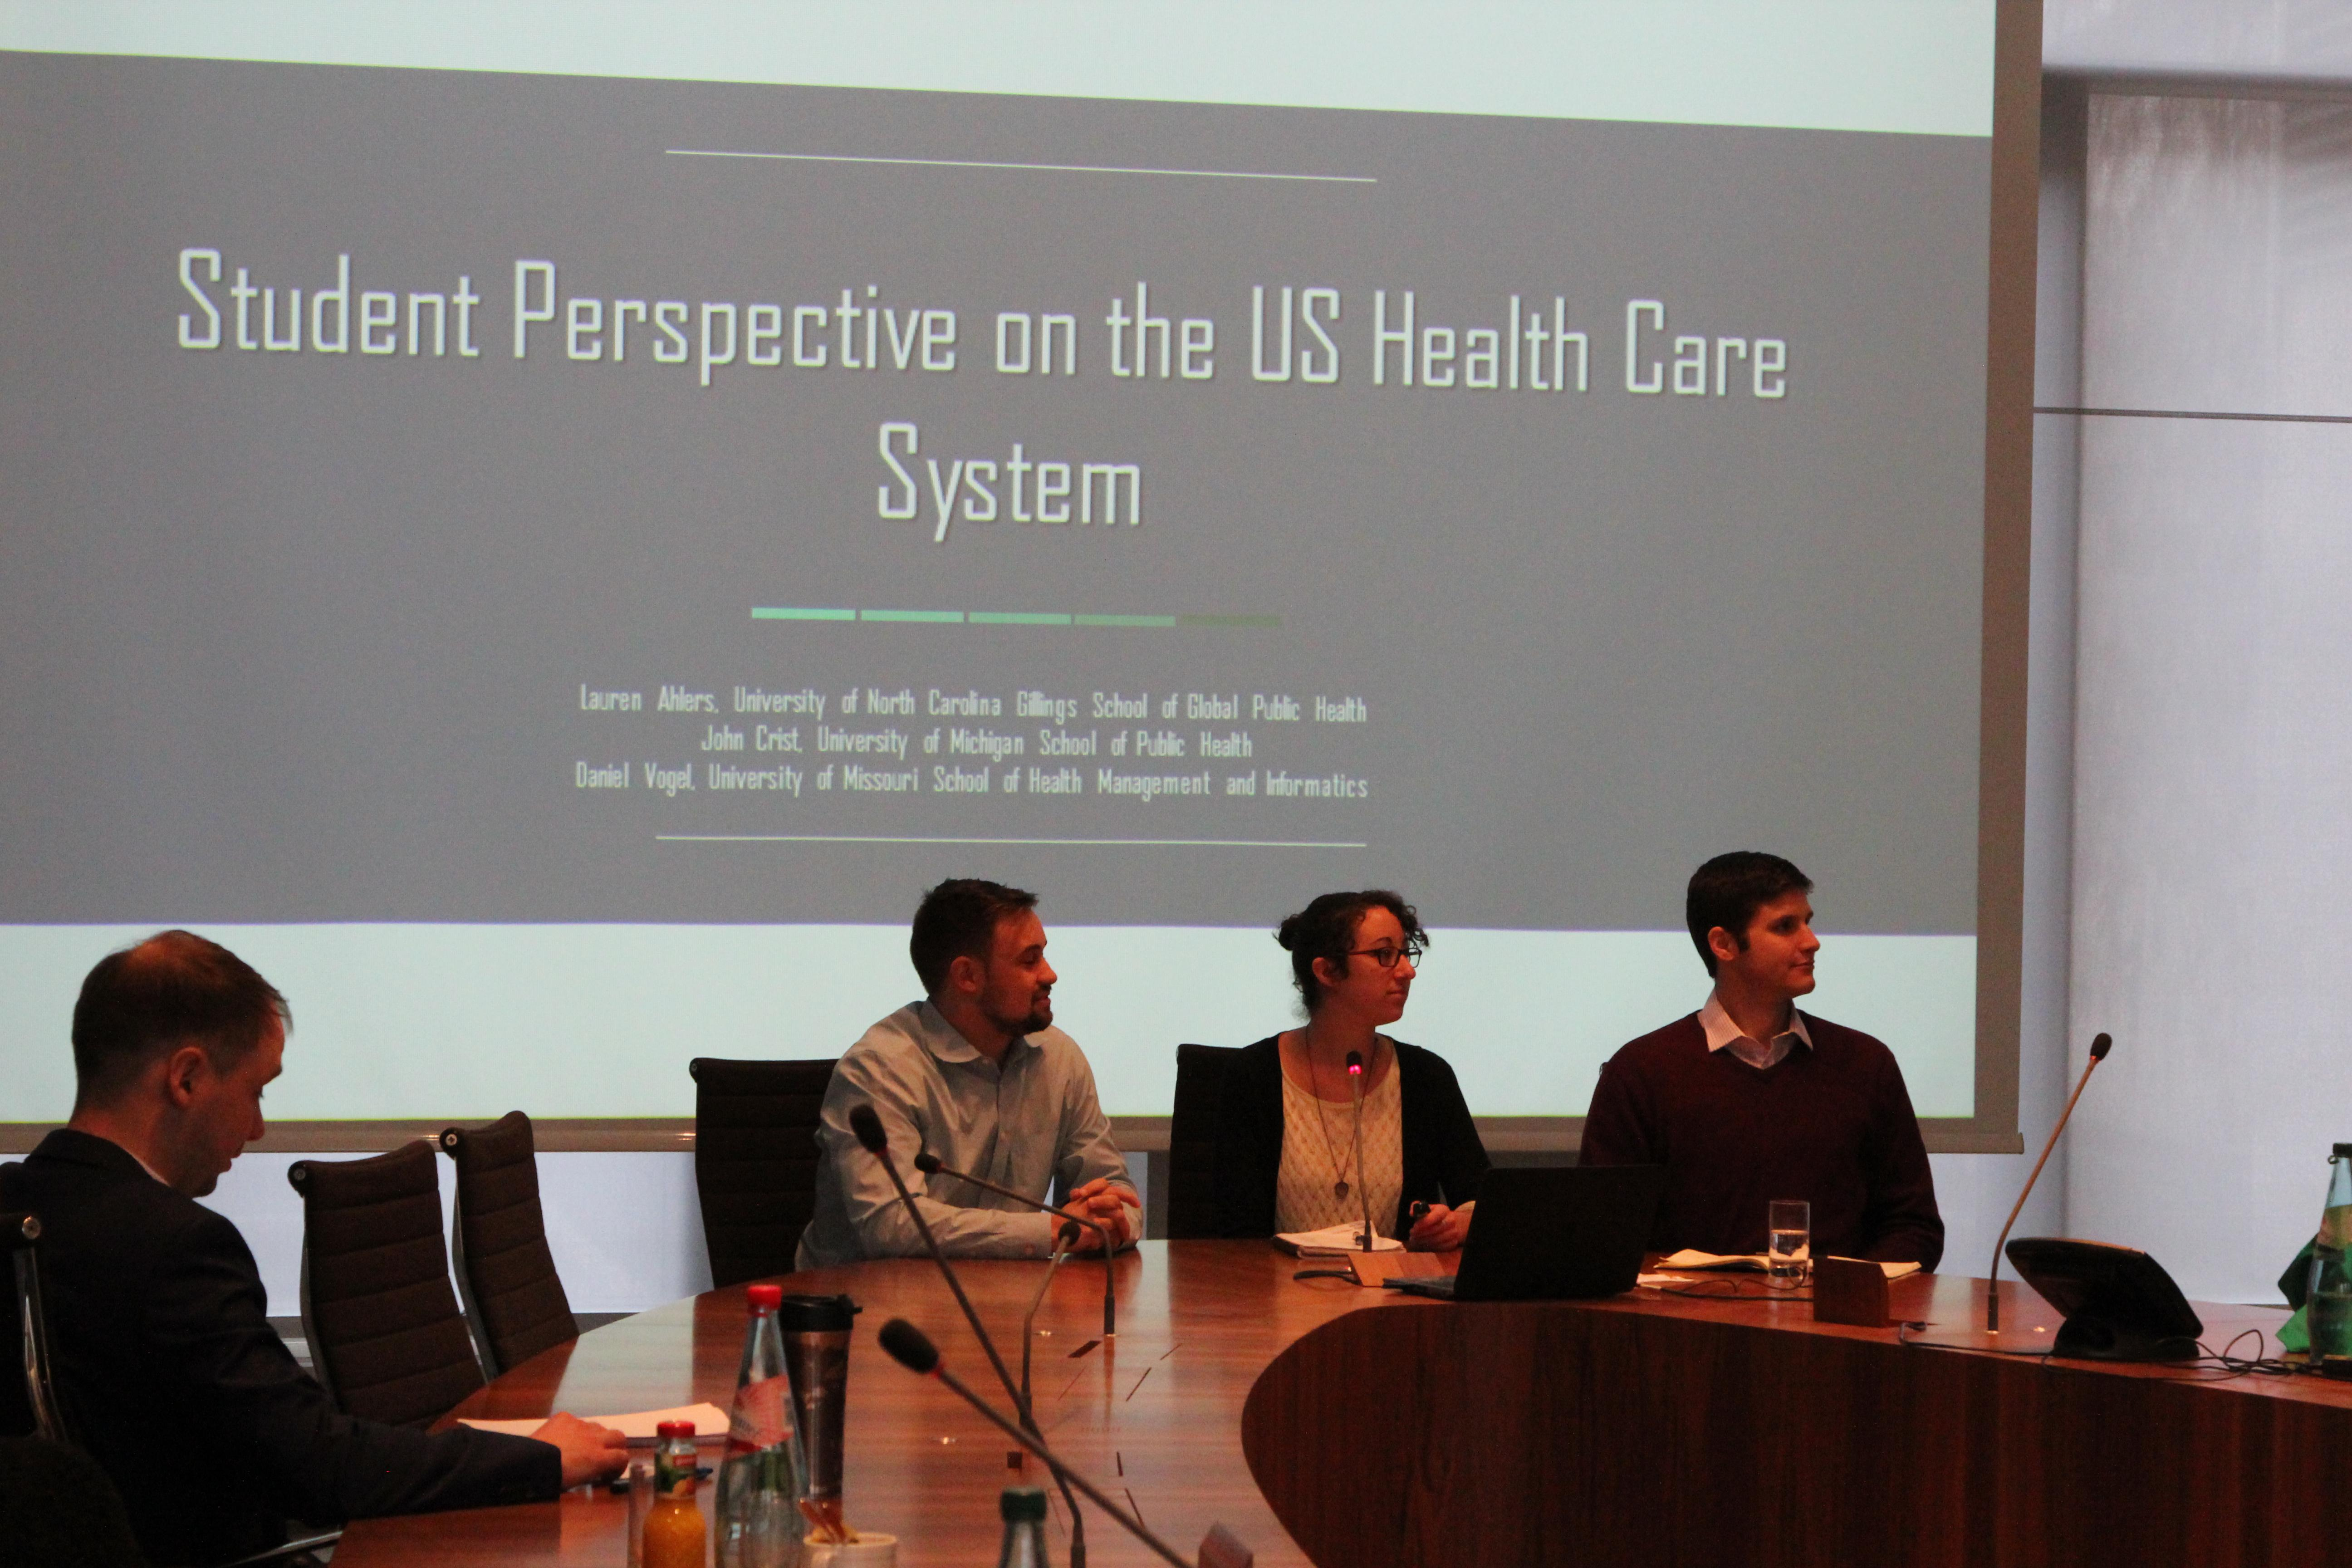 John Crist (right) presenting, along with students from the University of North Carolina and the University of Missouri, on the US health system for the director of Inpatient Reimbursement for Germany's largest Social Health Insurance Fund